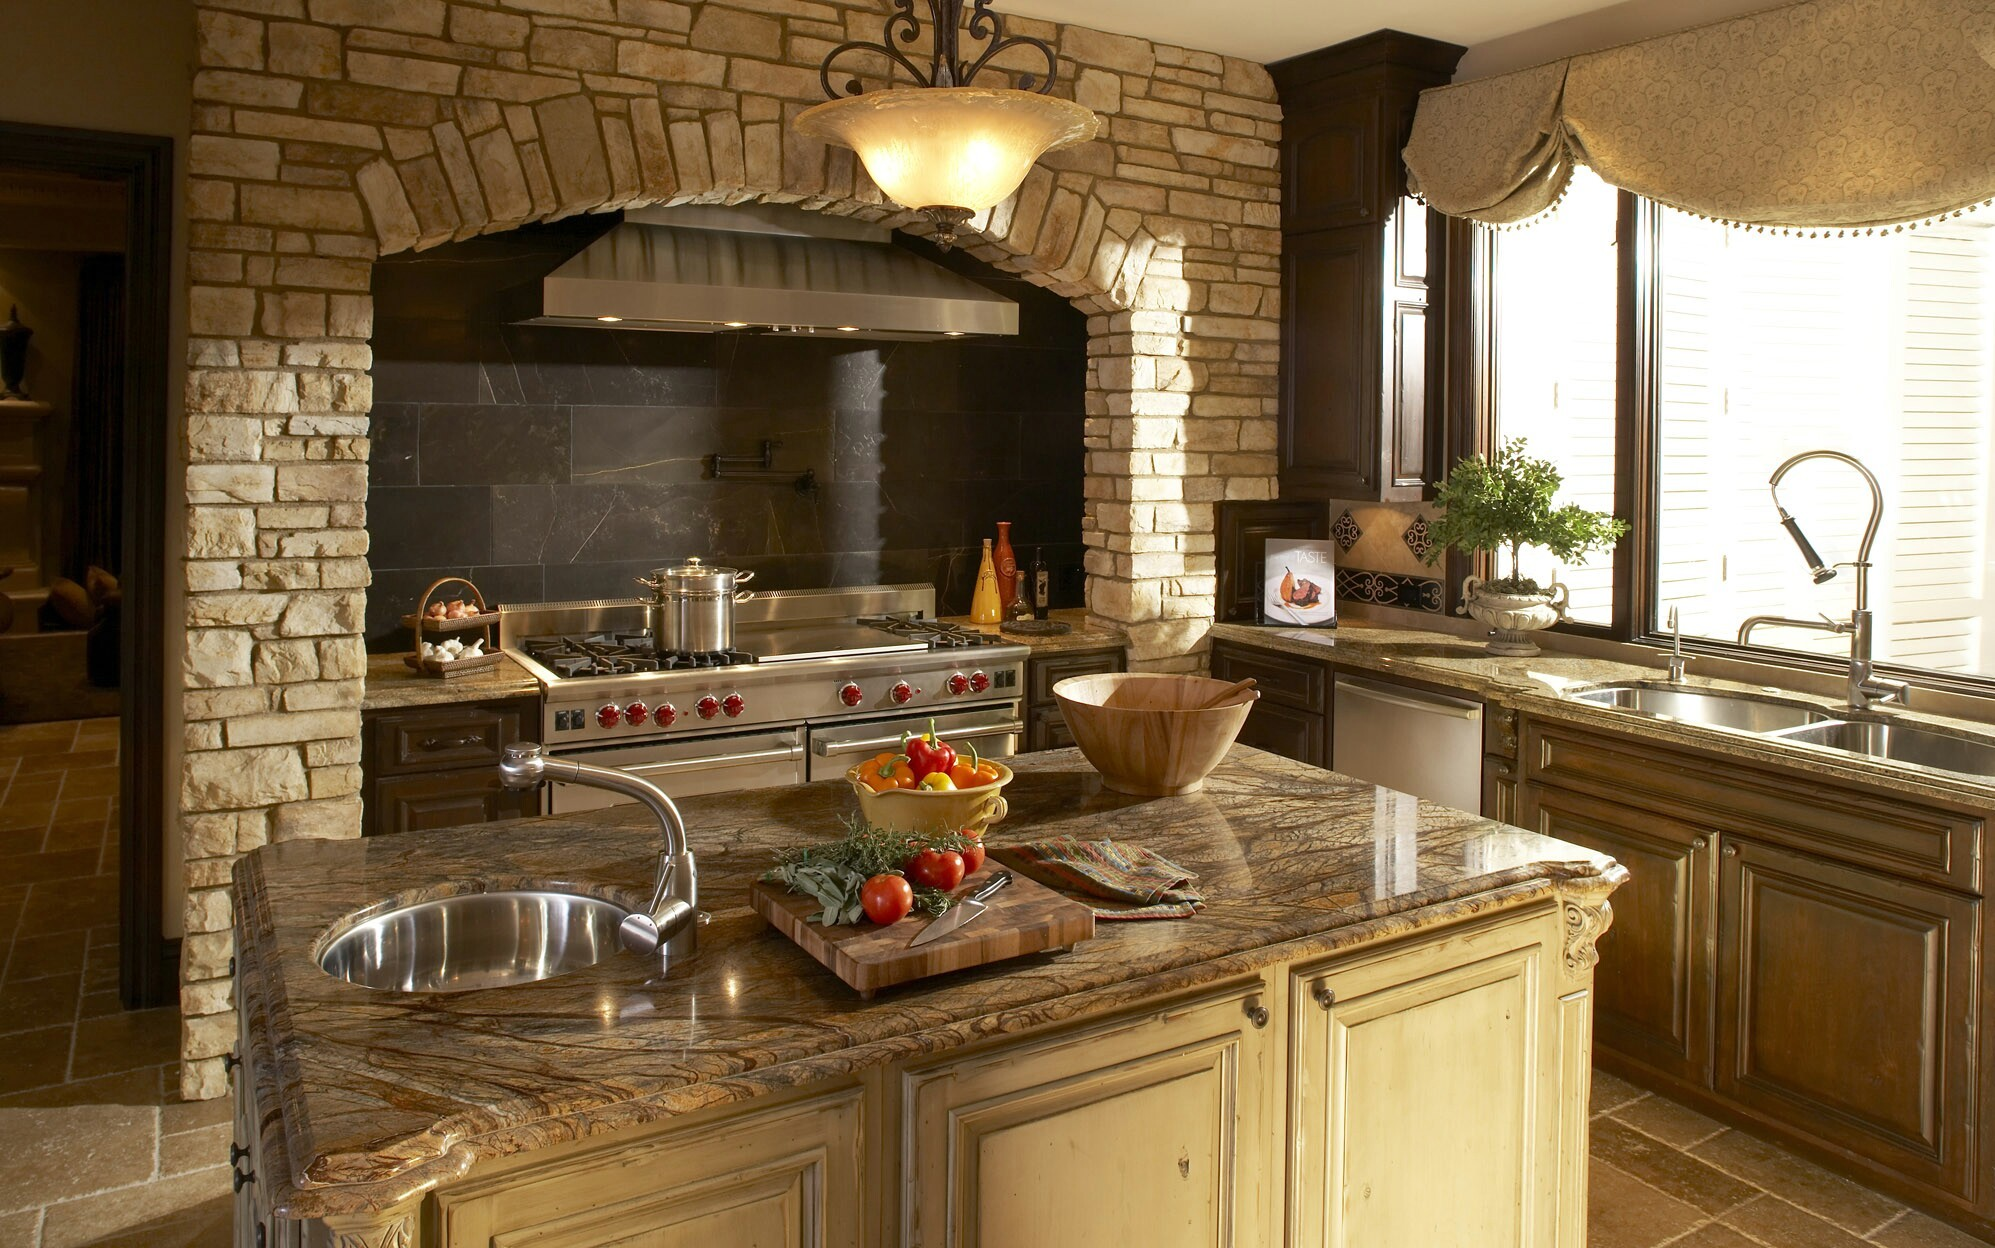 Image of: tuscan decor for kitchen